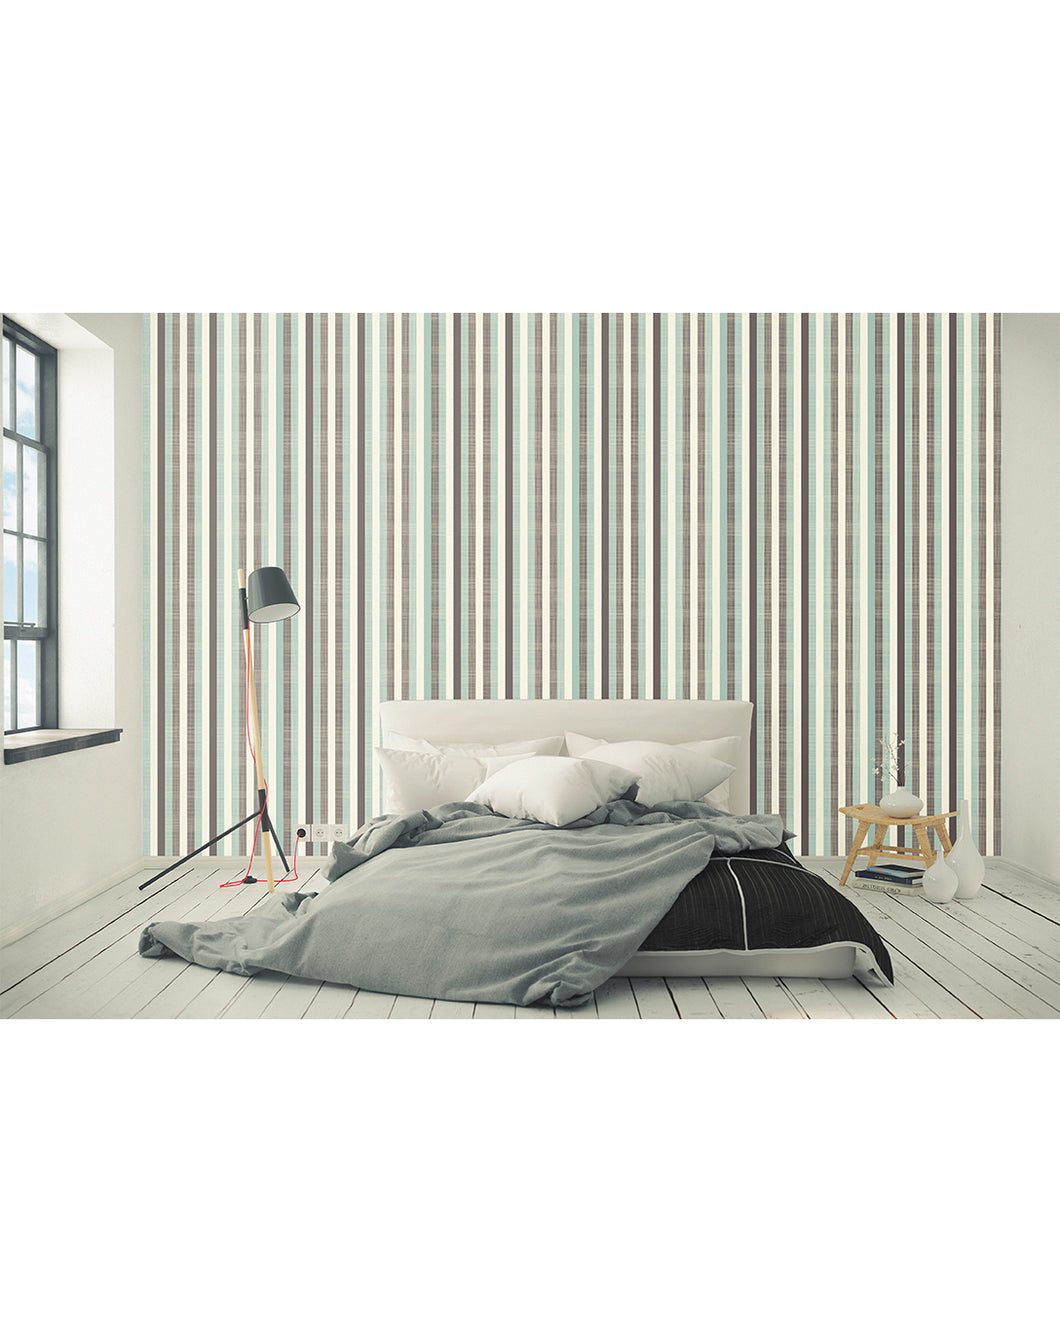 Retro Wall Decor With Geometric Abstract Lines Removable